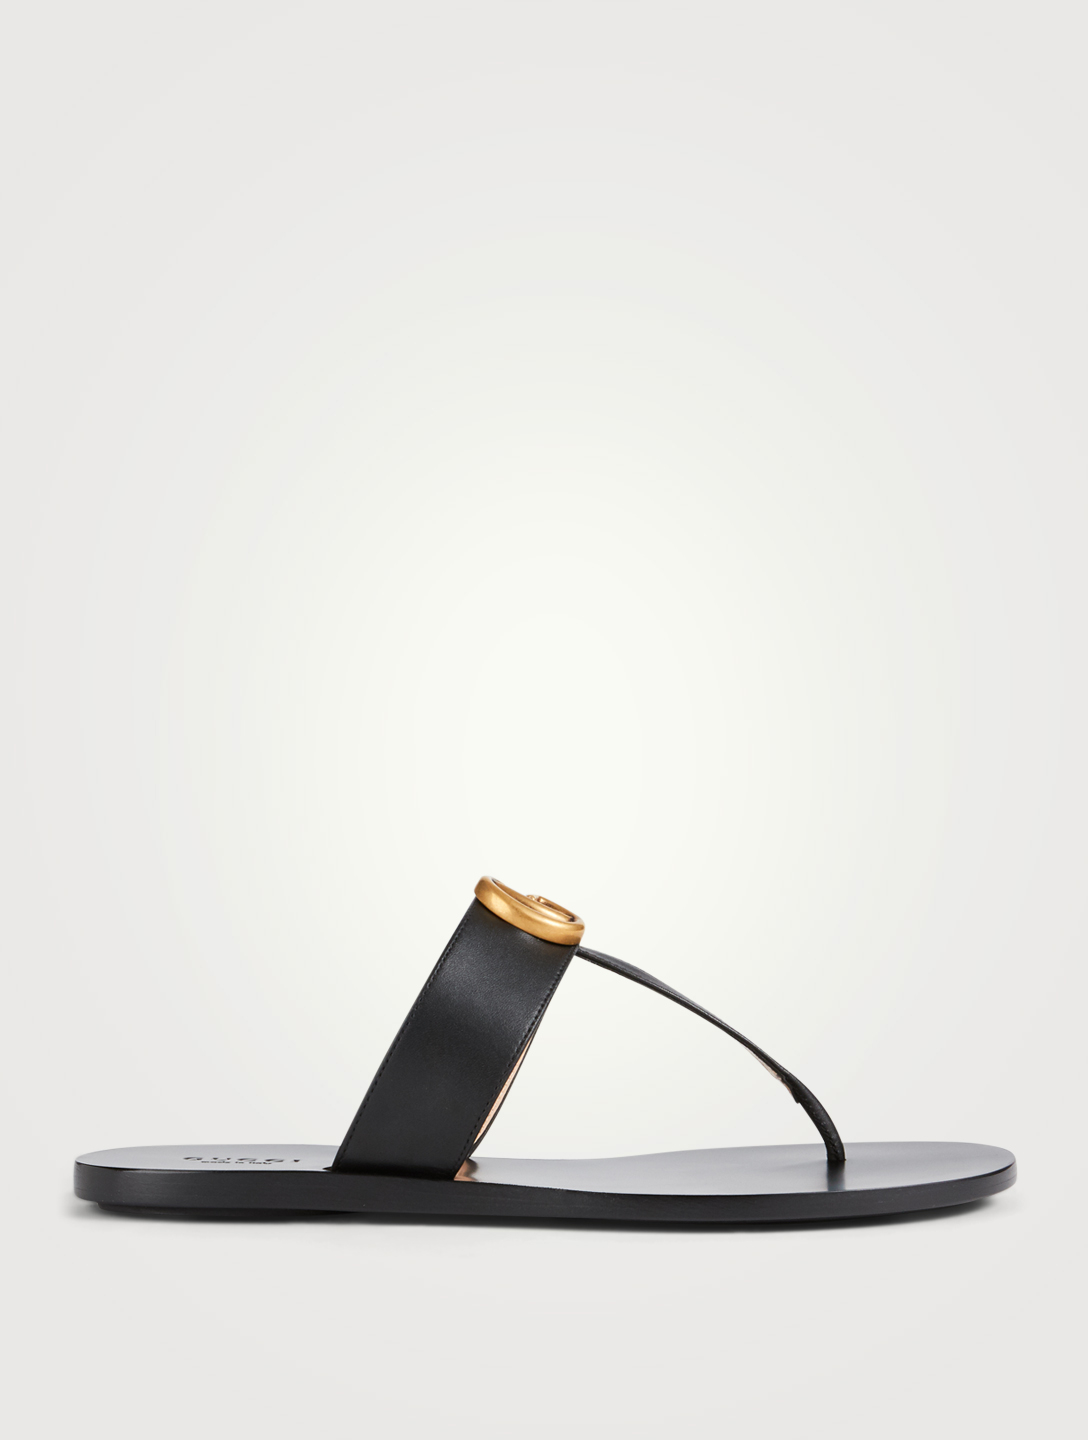 GUCCI Leather Thong Sandals With Double G Women's Black